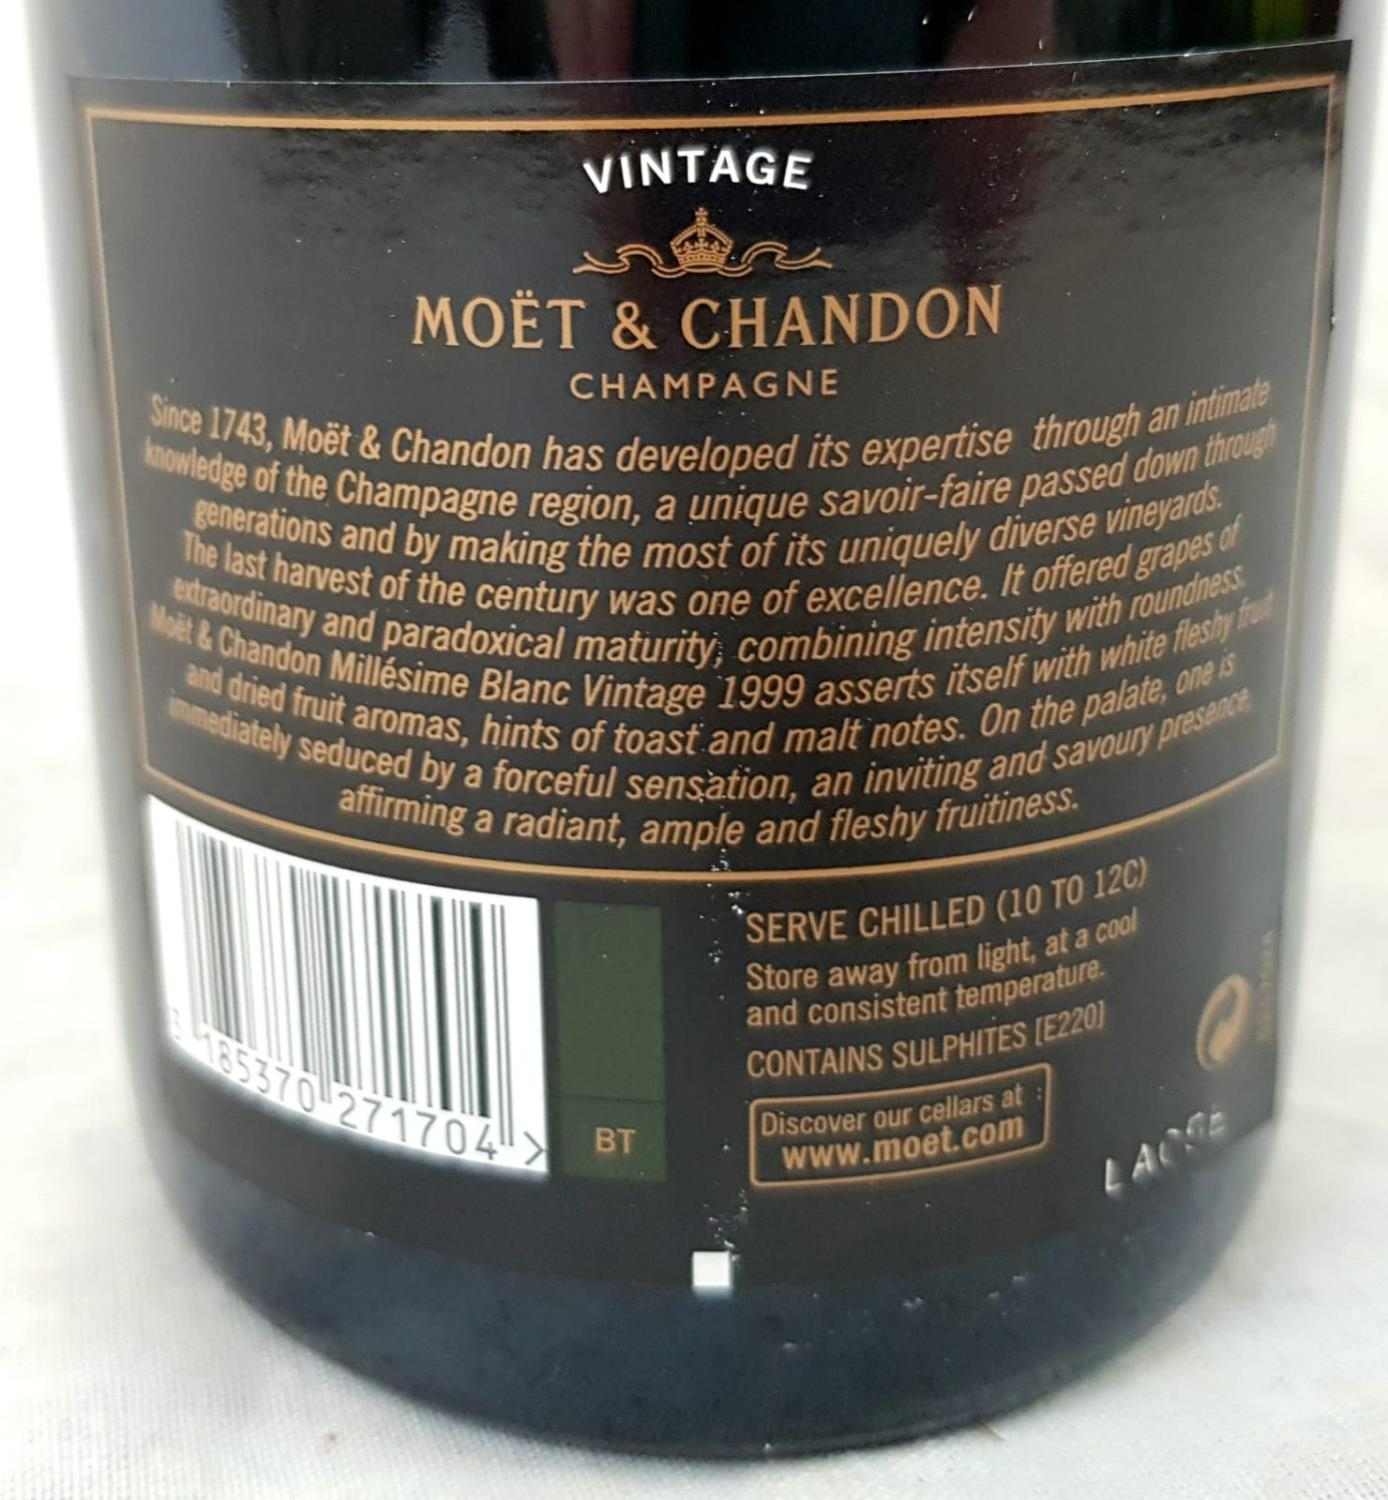 Bottle (750ml) Moet and Chandon Millésime Blanc Vintage 1999 Champagne. As new, in gift box. - Image 3 of 4